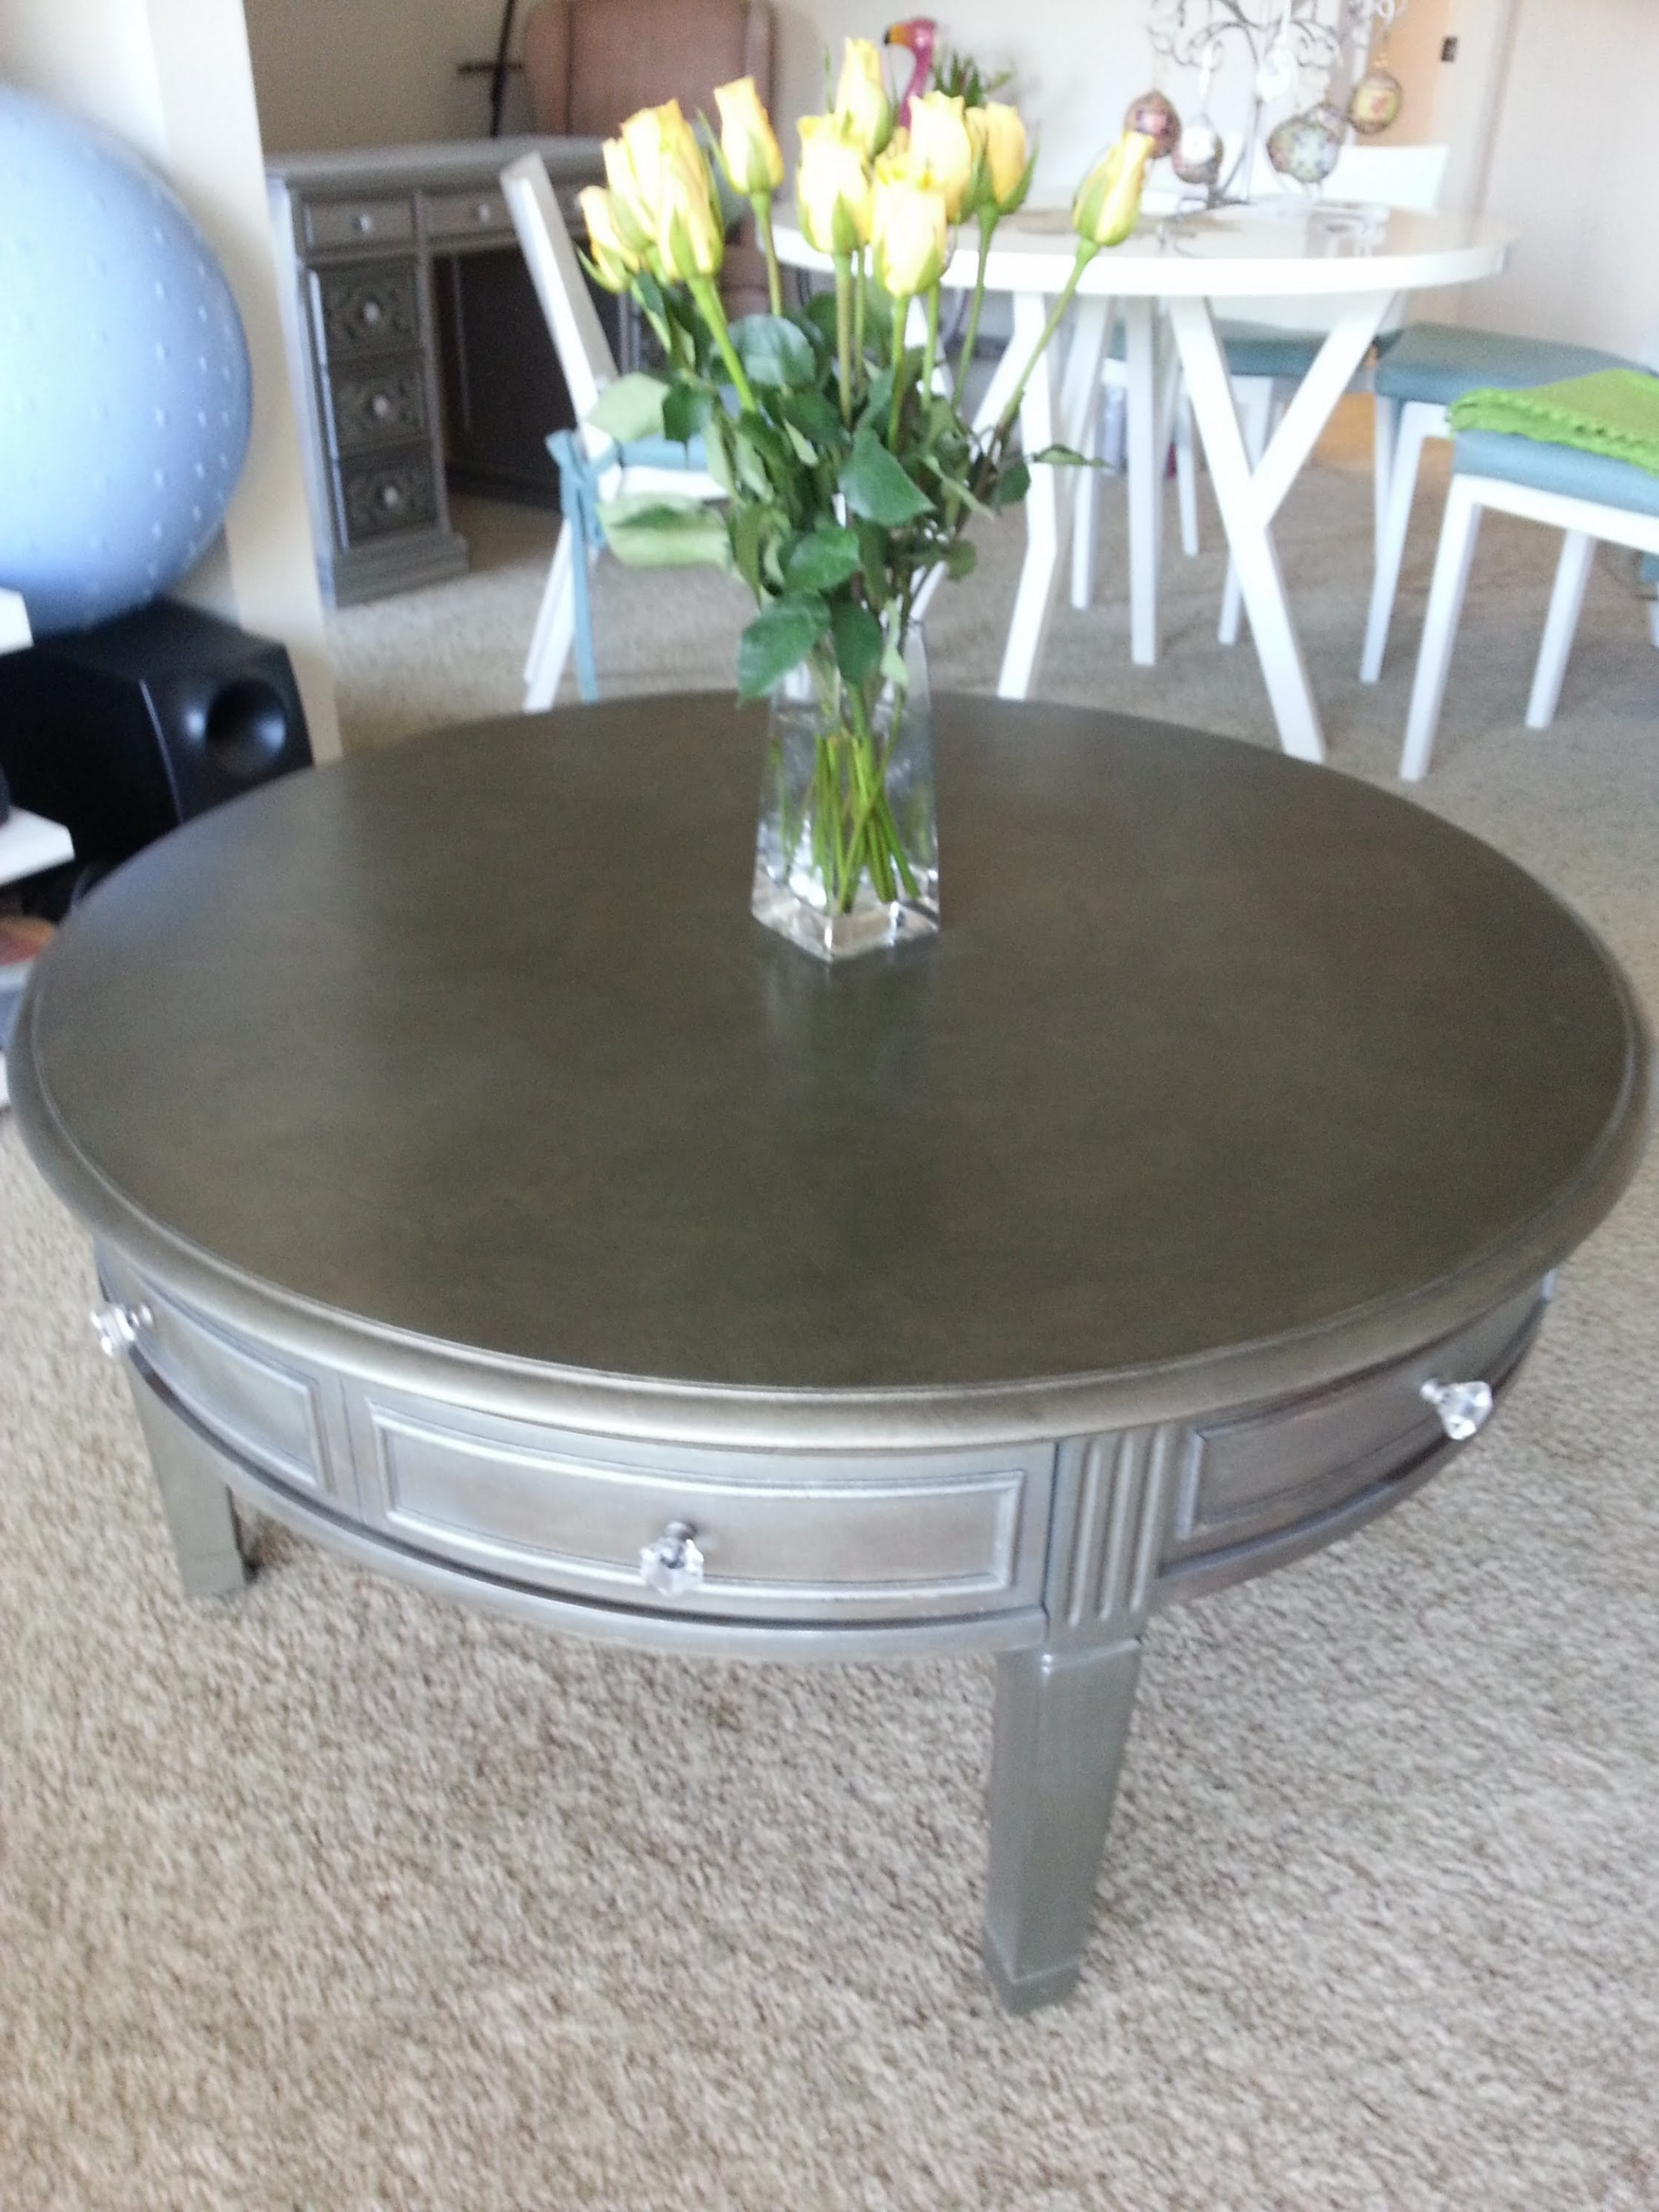 17 Classy Painted Coffee Tables Diy (Gallery 18 of 20)